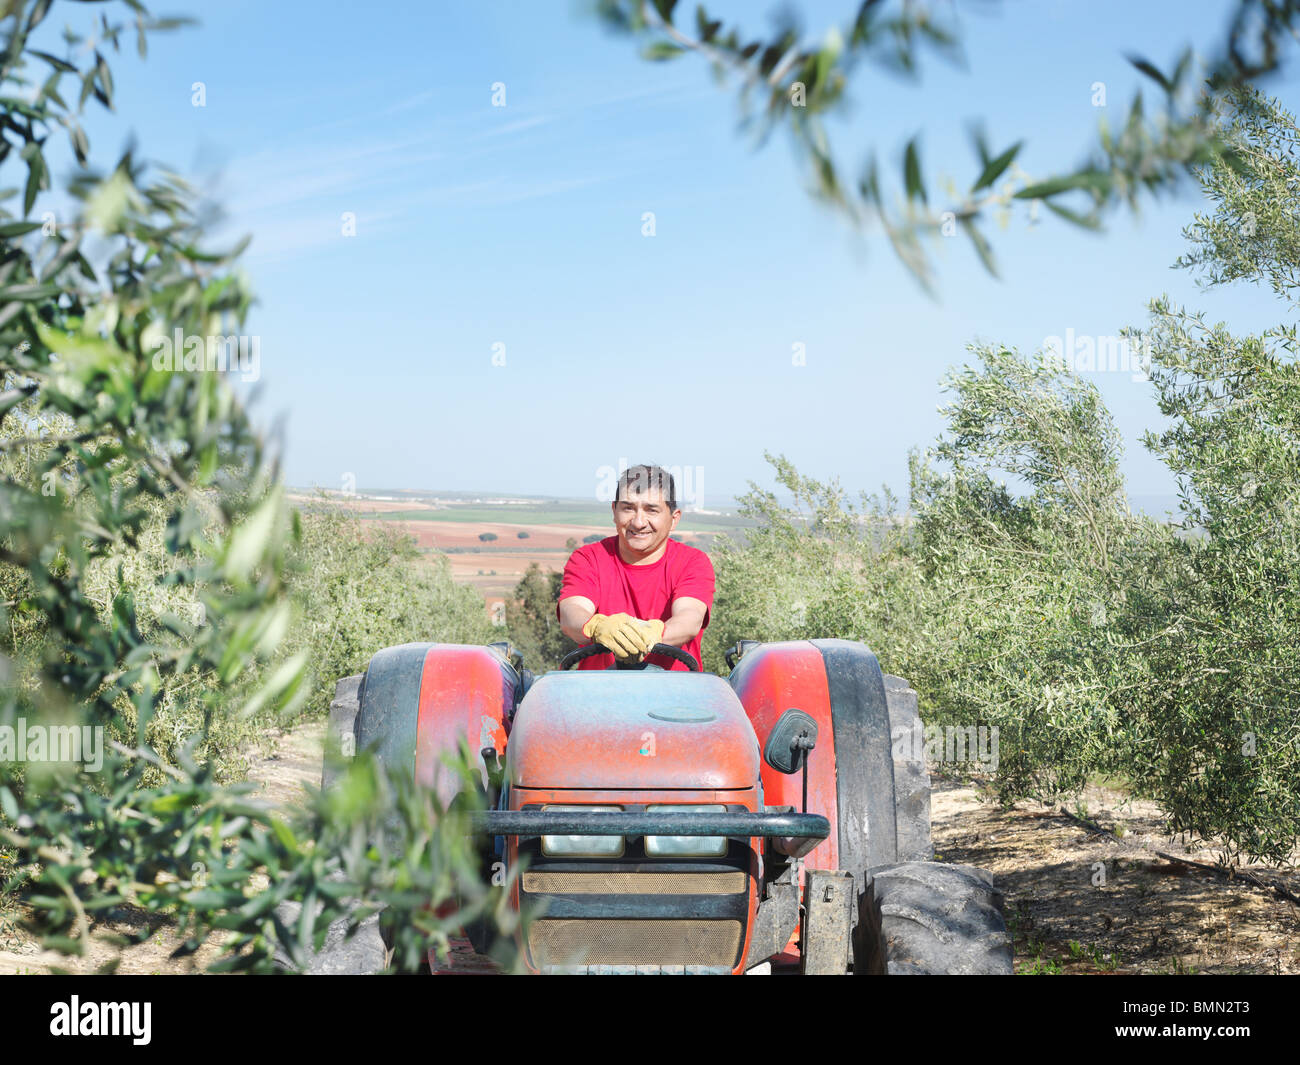 Man on tractor in olive grove - Stock Image